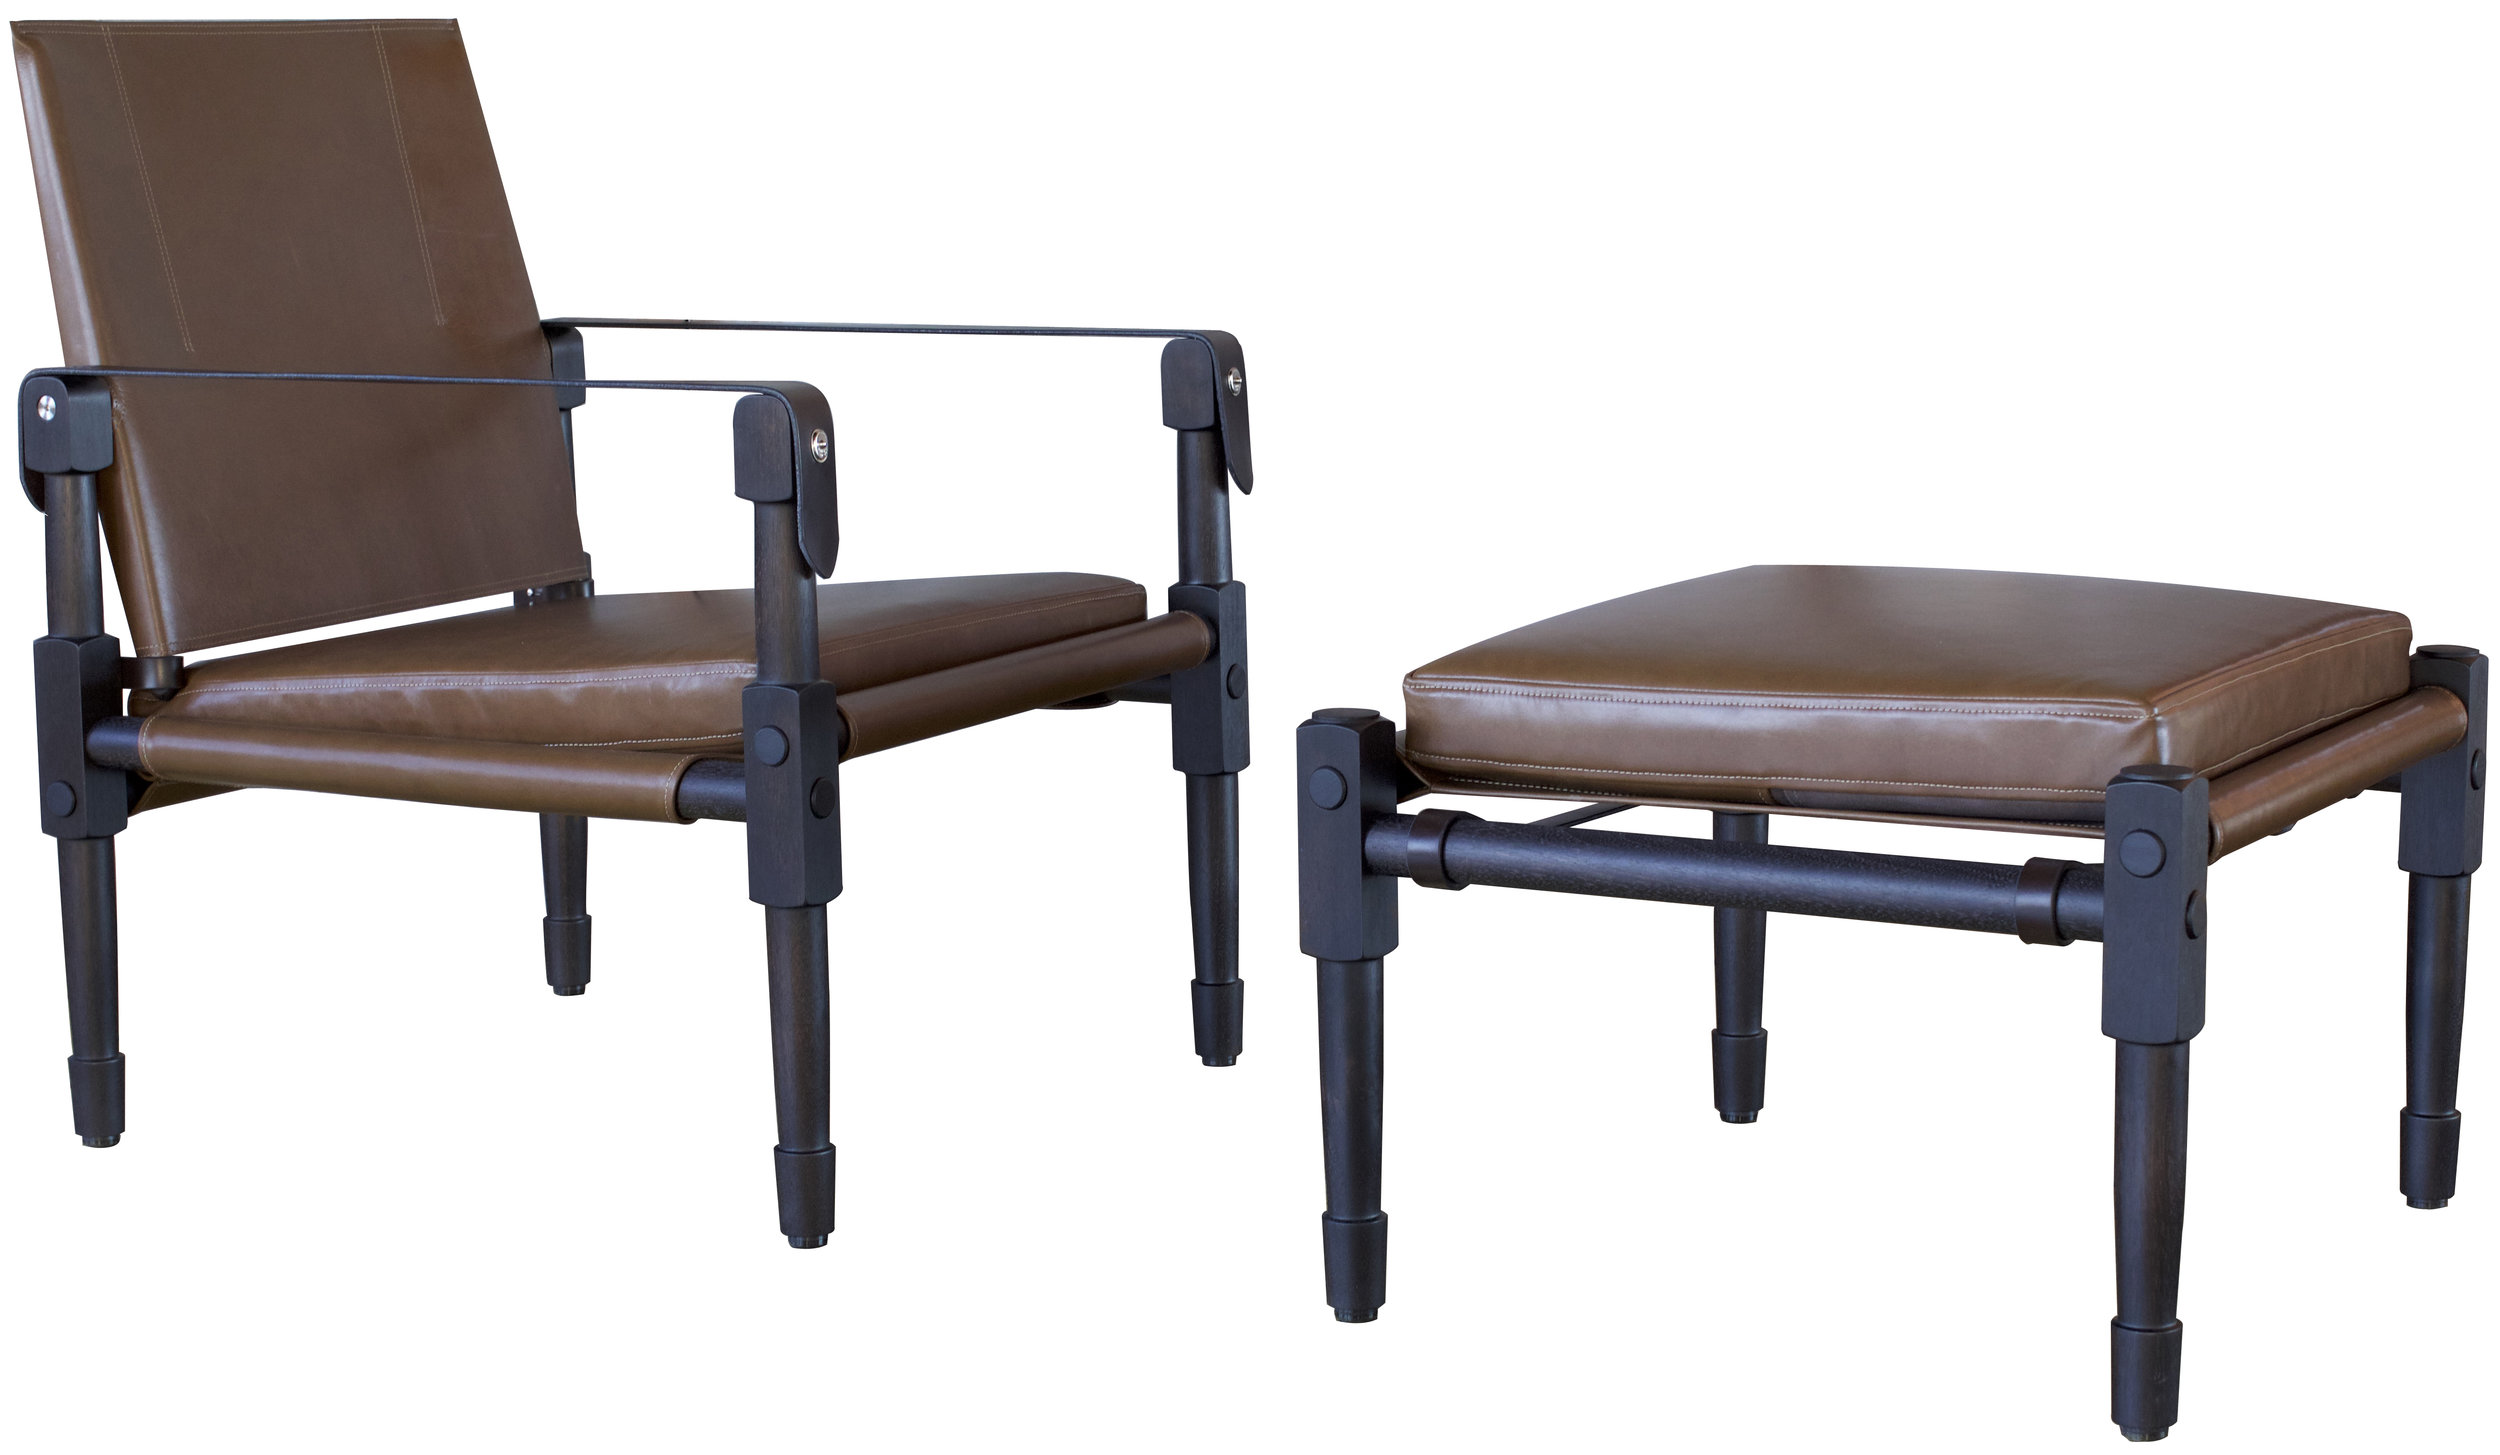 Chatwin Lounge and Ottoman - Grand 2